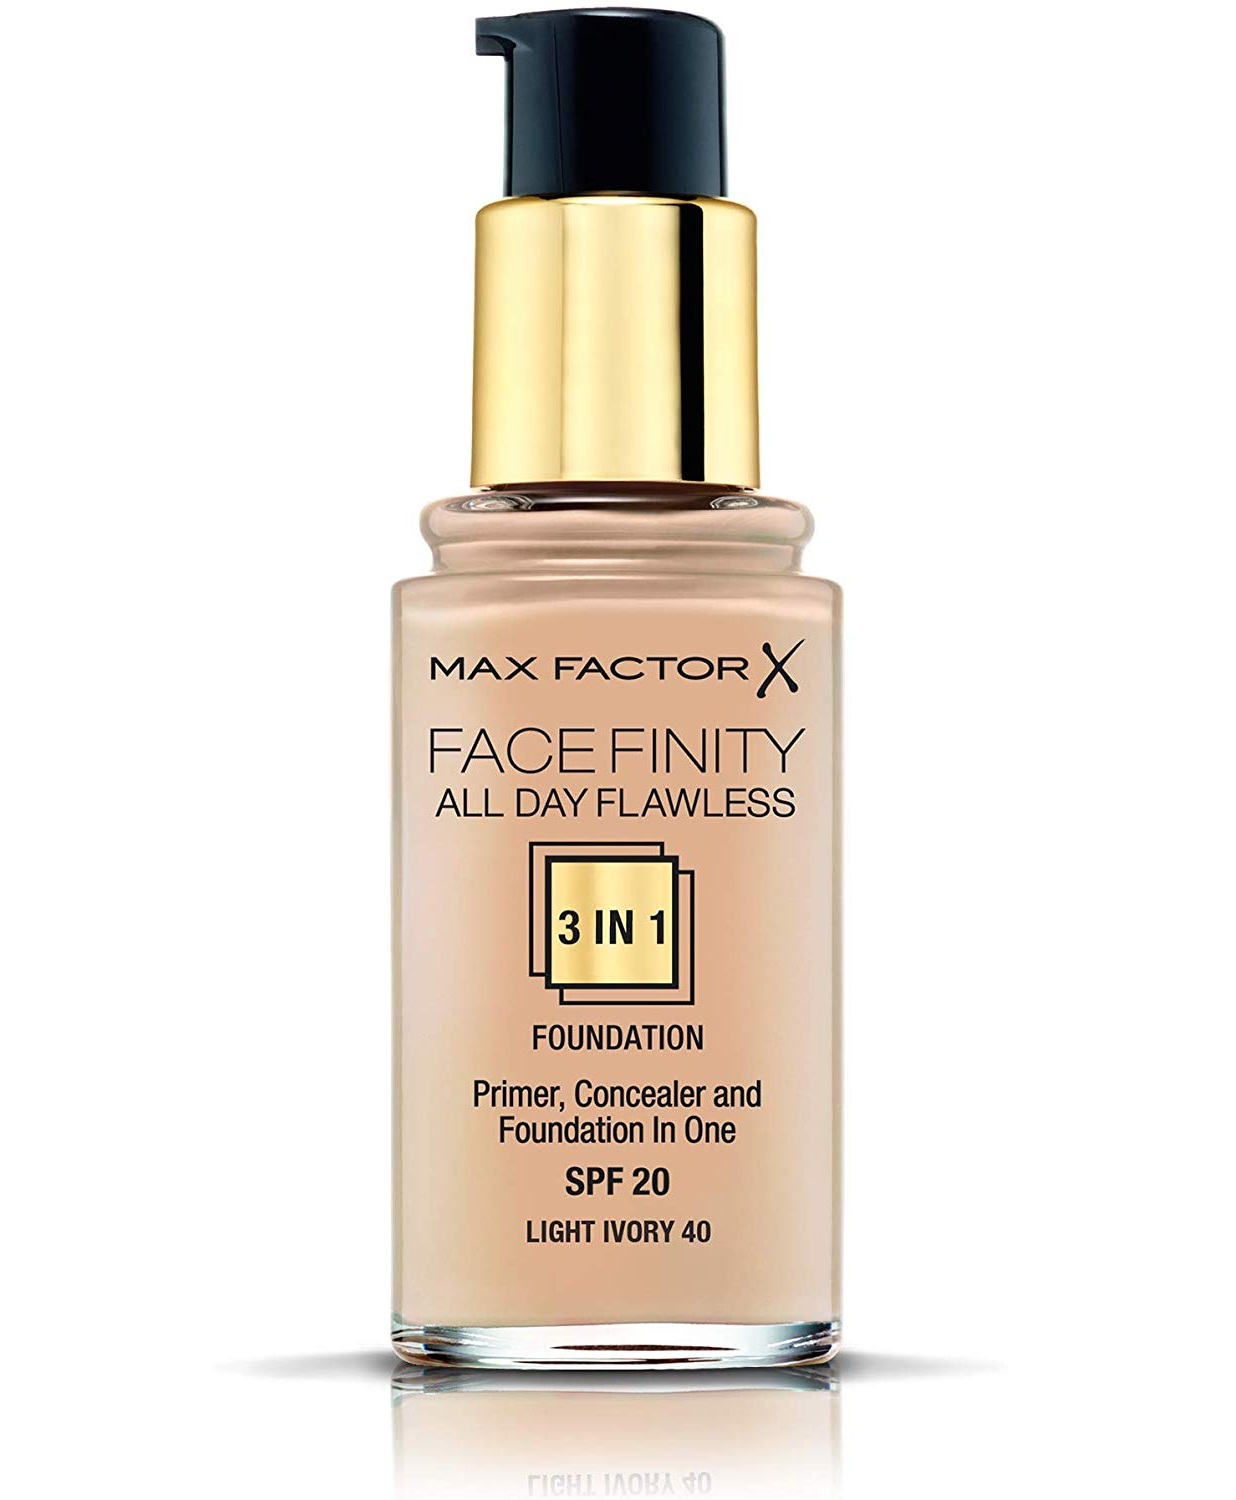 Max Factor FaceFinity All Day Flawless 3 in 1 Foundation, Primer and Concealer, SPF 20 Light Ivory 40 - Walmart.com